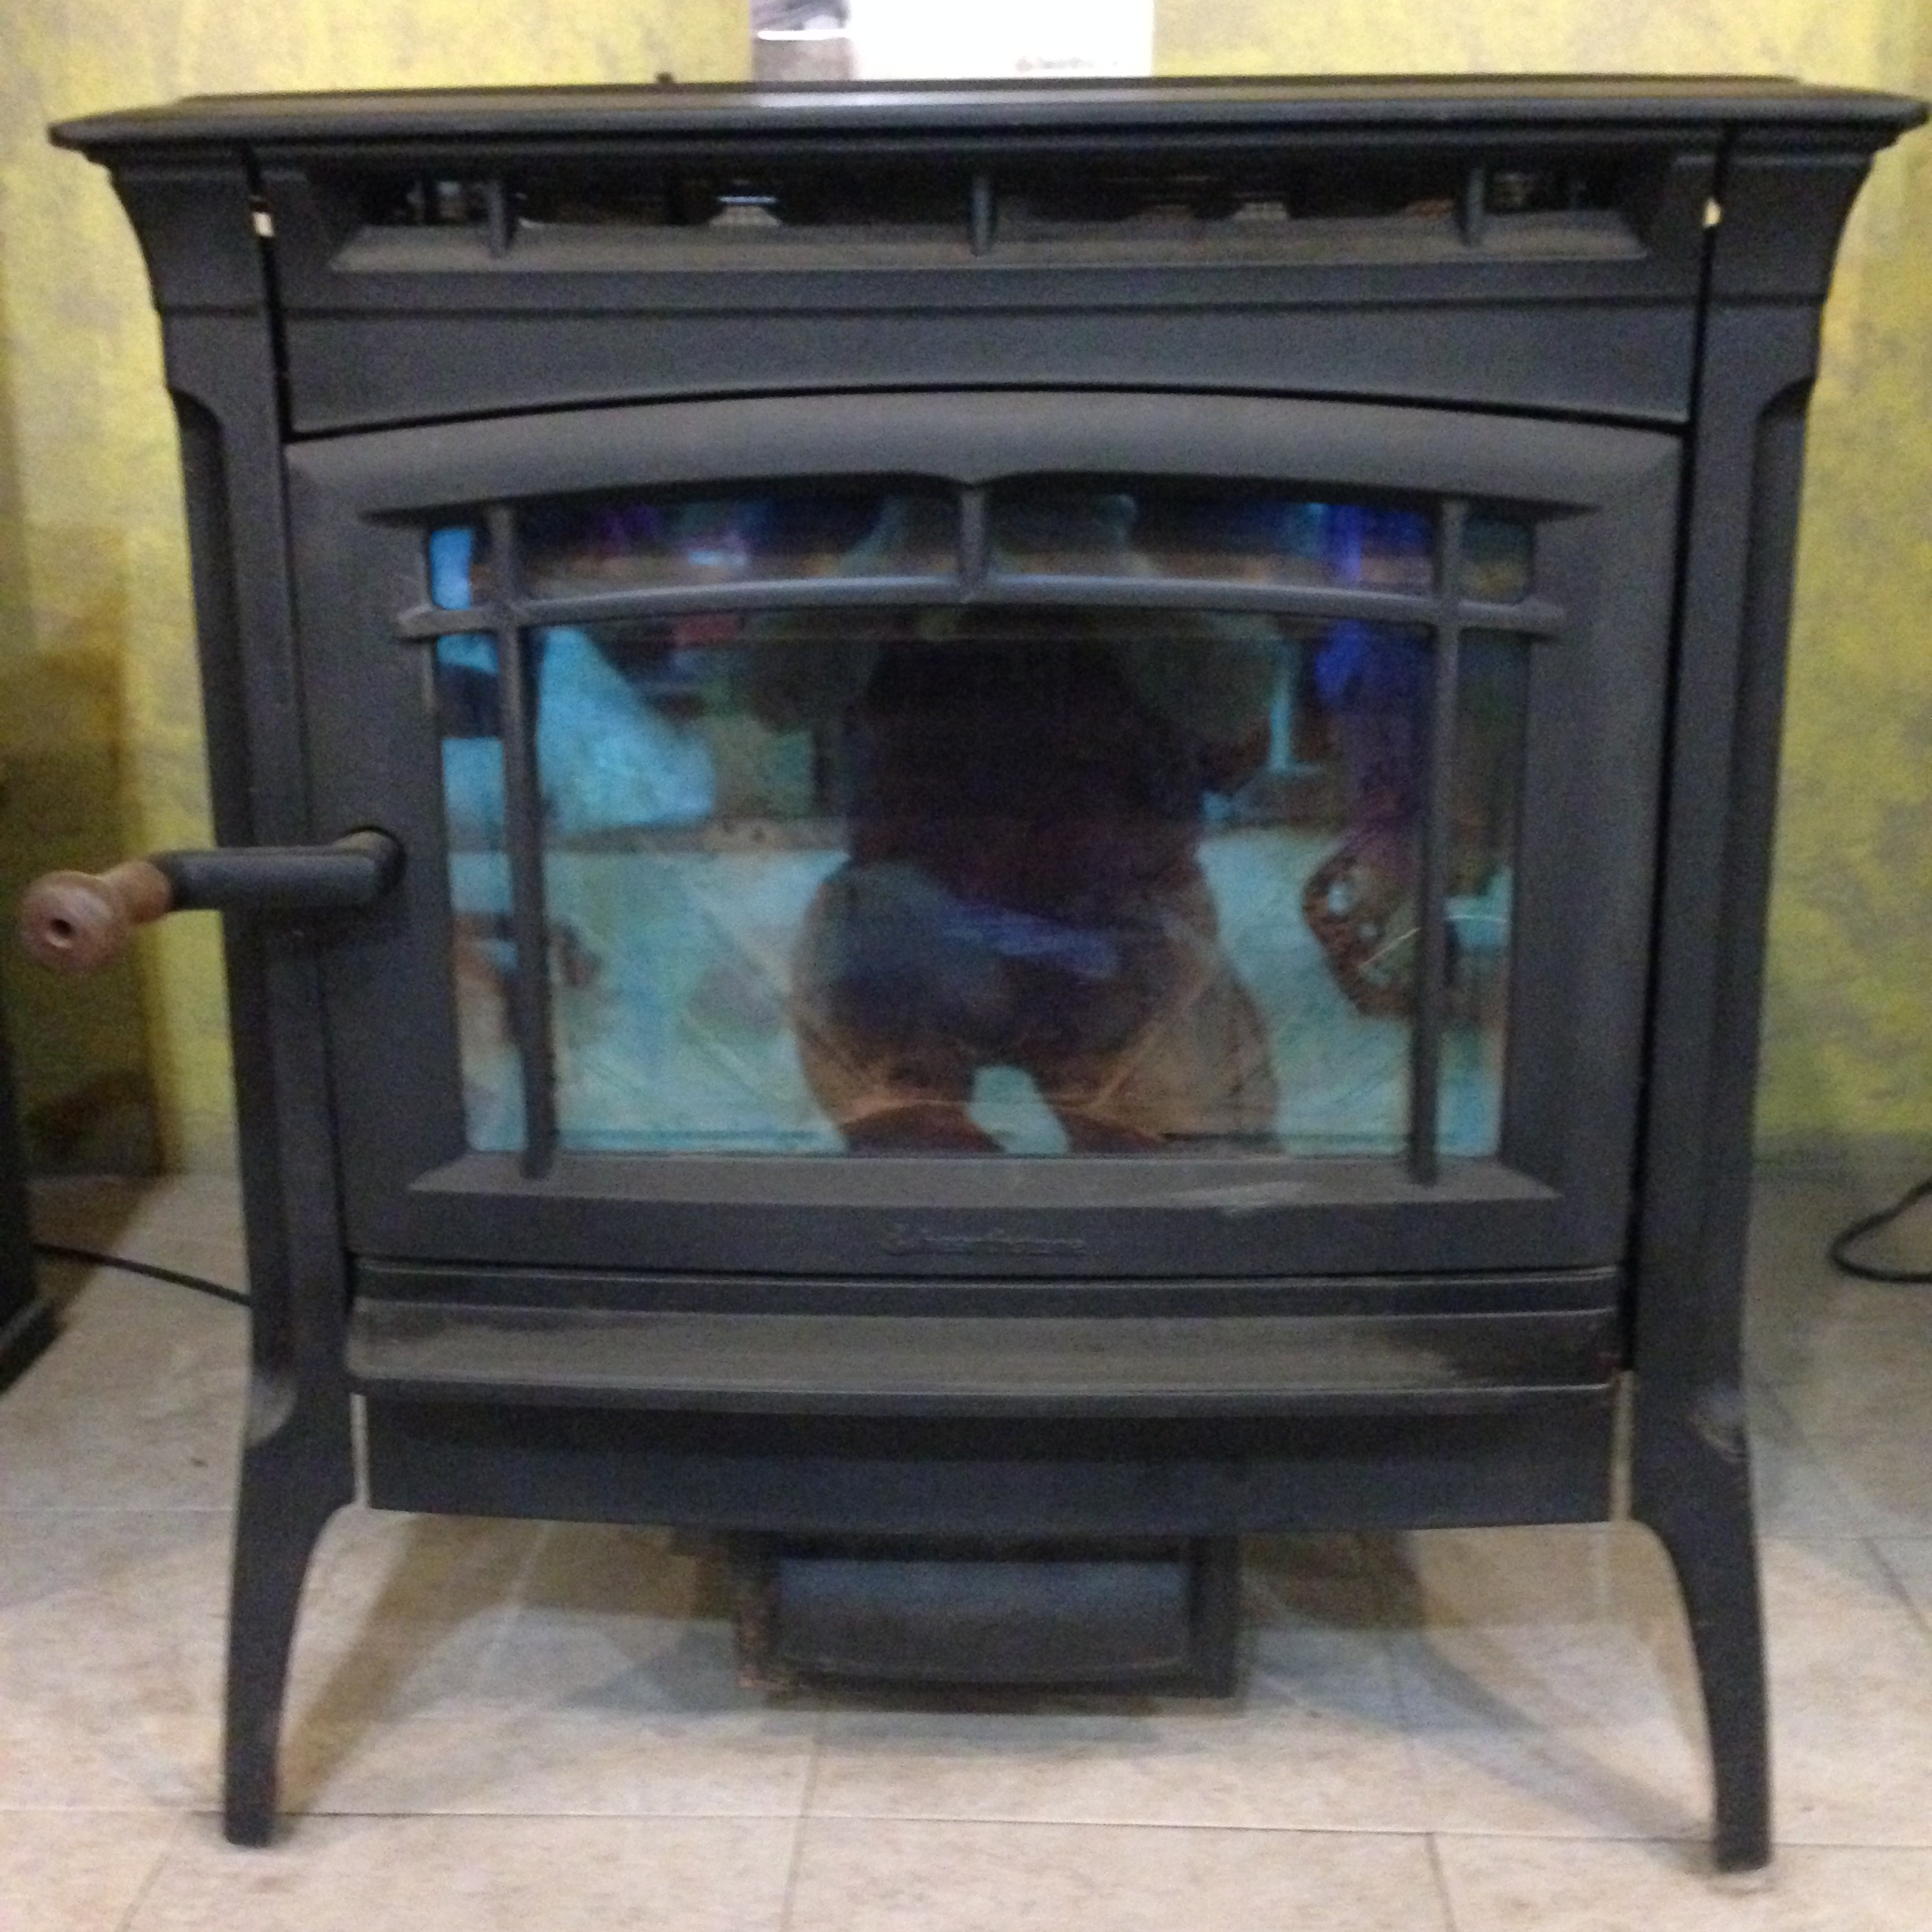 Cozy Cabin Stove & Fireplace Shop - The Cozy Cabin Stove and ...